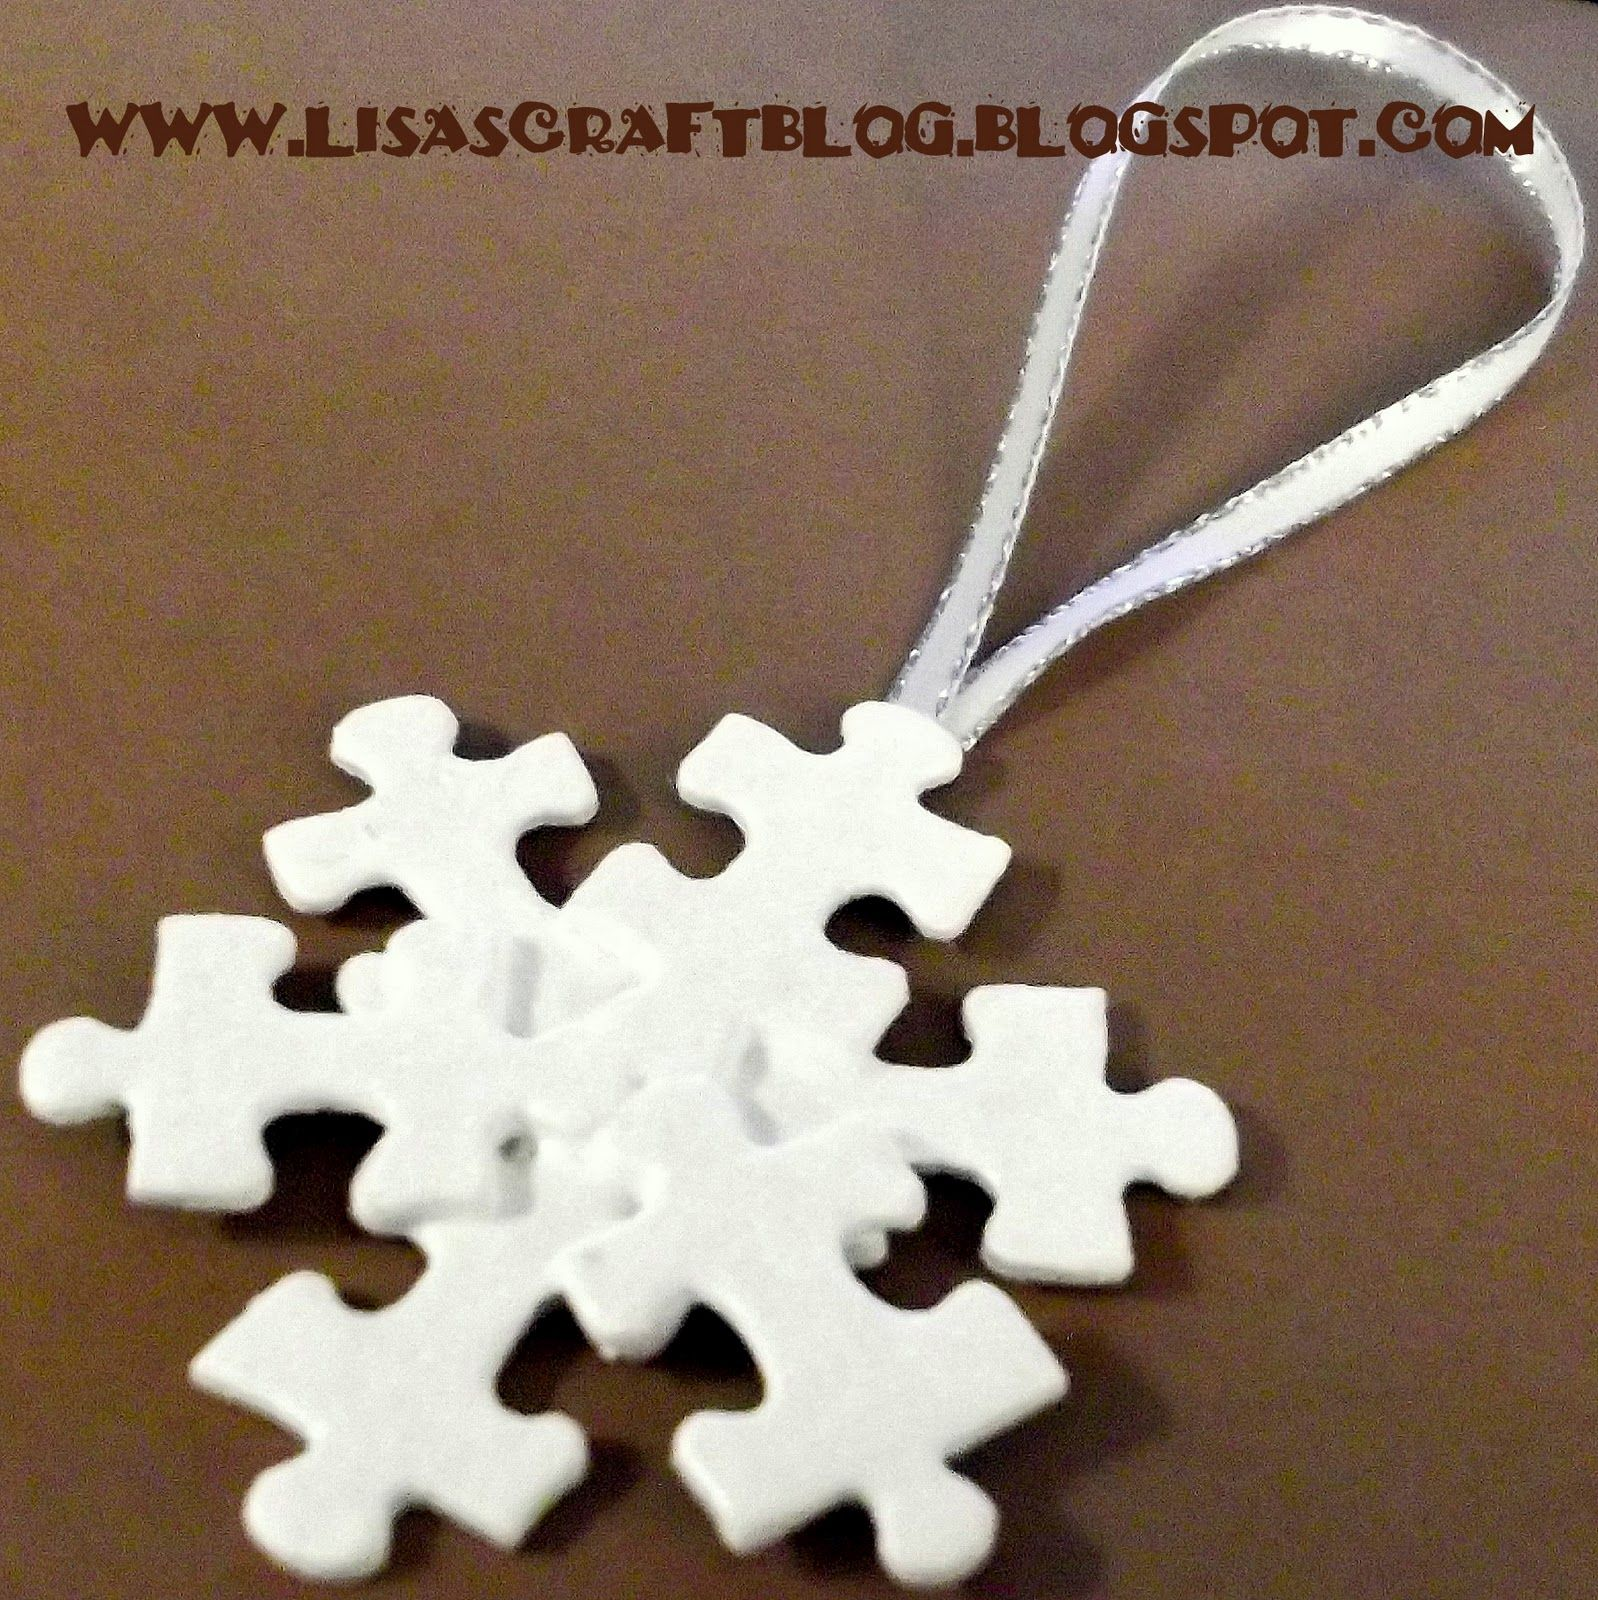 Snowflake ornaments crafts - Lisa S Craft Blog Tutorial Puzzle Piece Ornaments